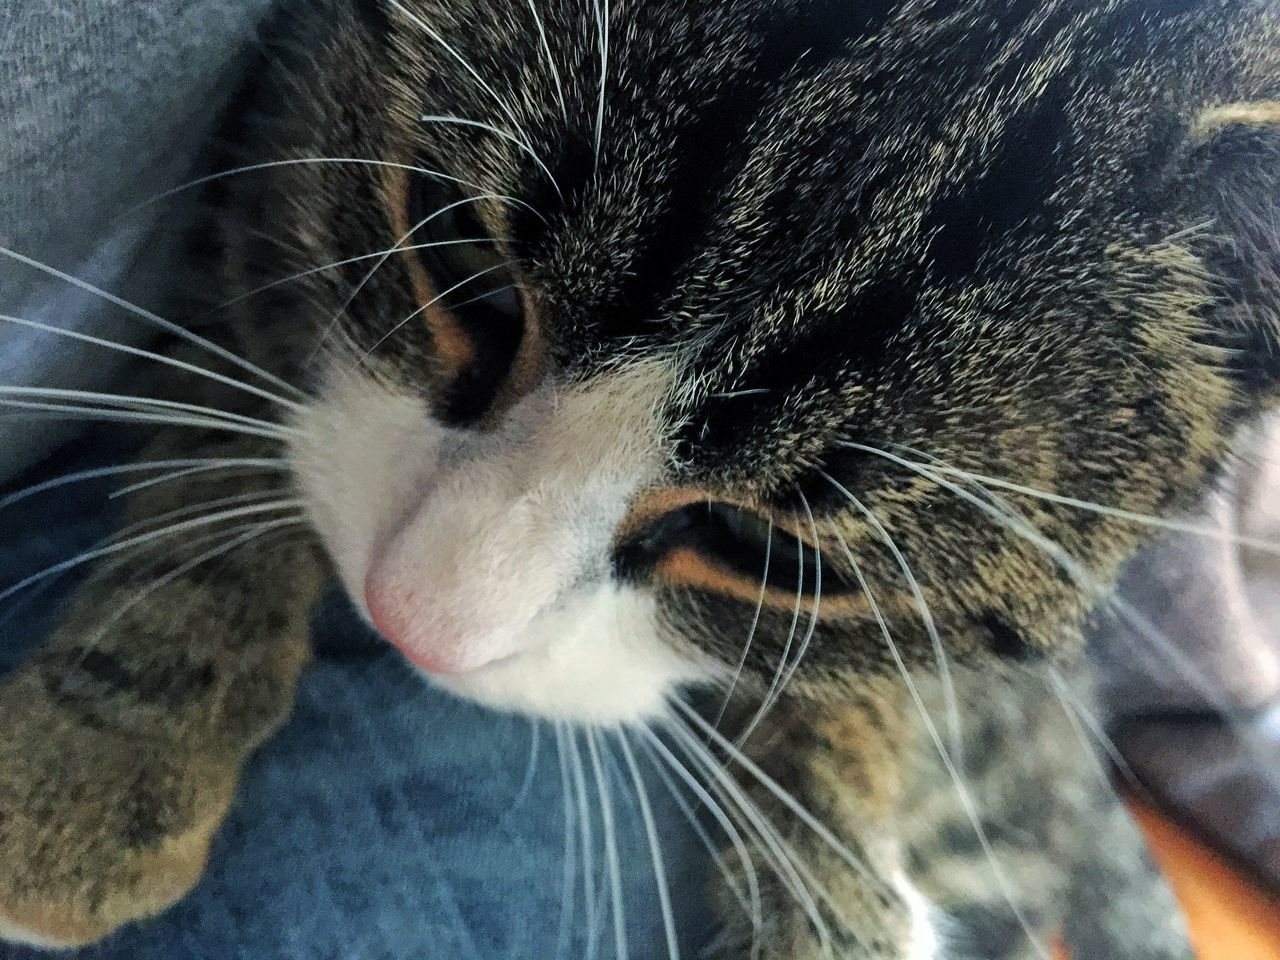 domestic cat, pets, one animal, domestic animals, whisker, animal themes, feline, mammal, close-up, cat, indoors, no people, day